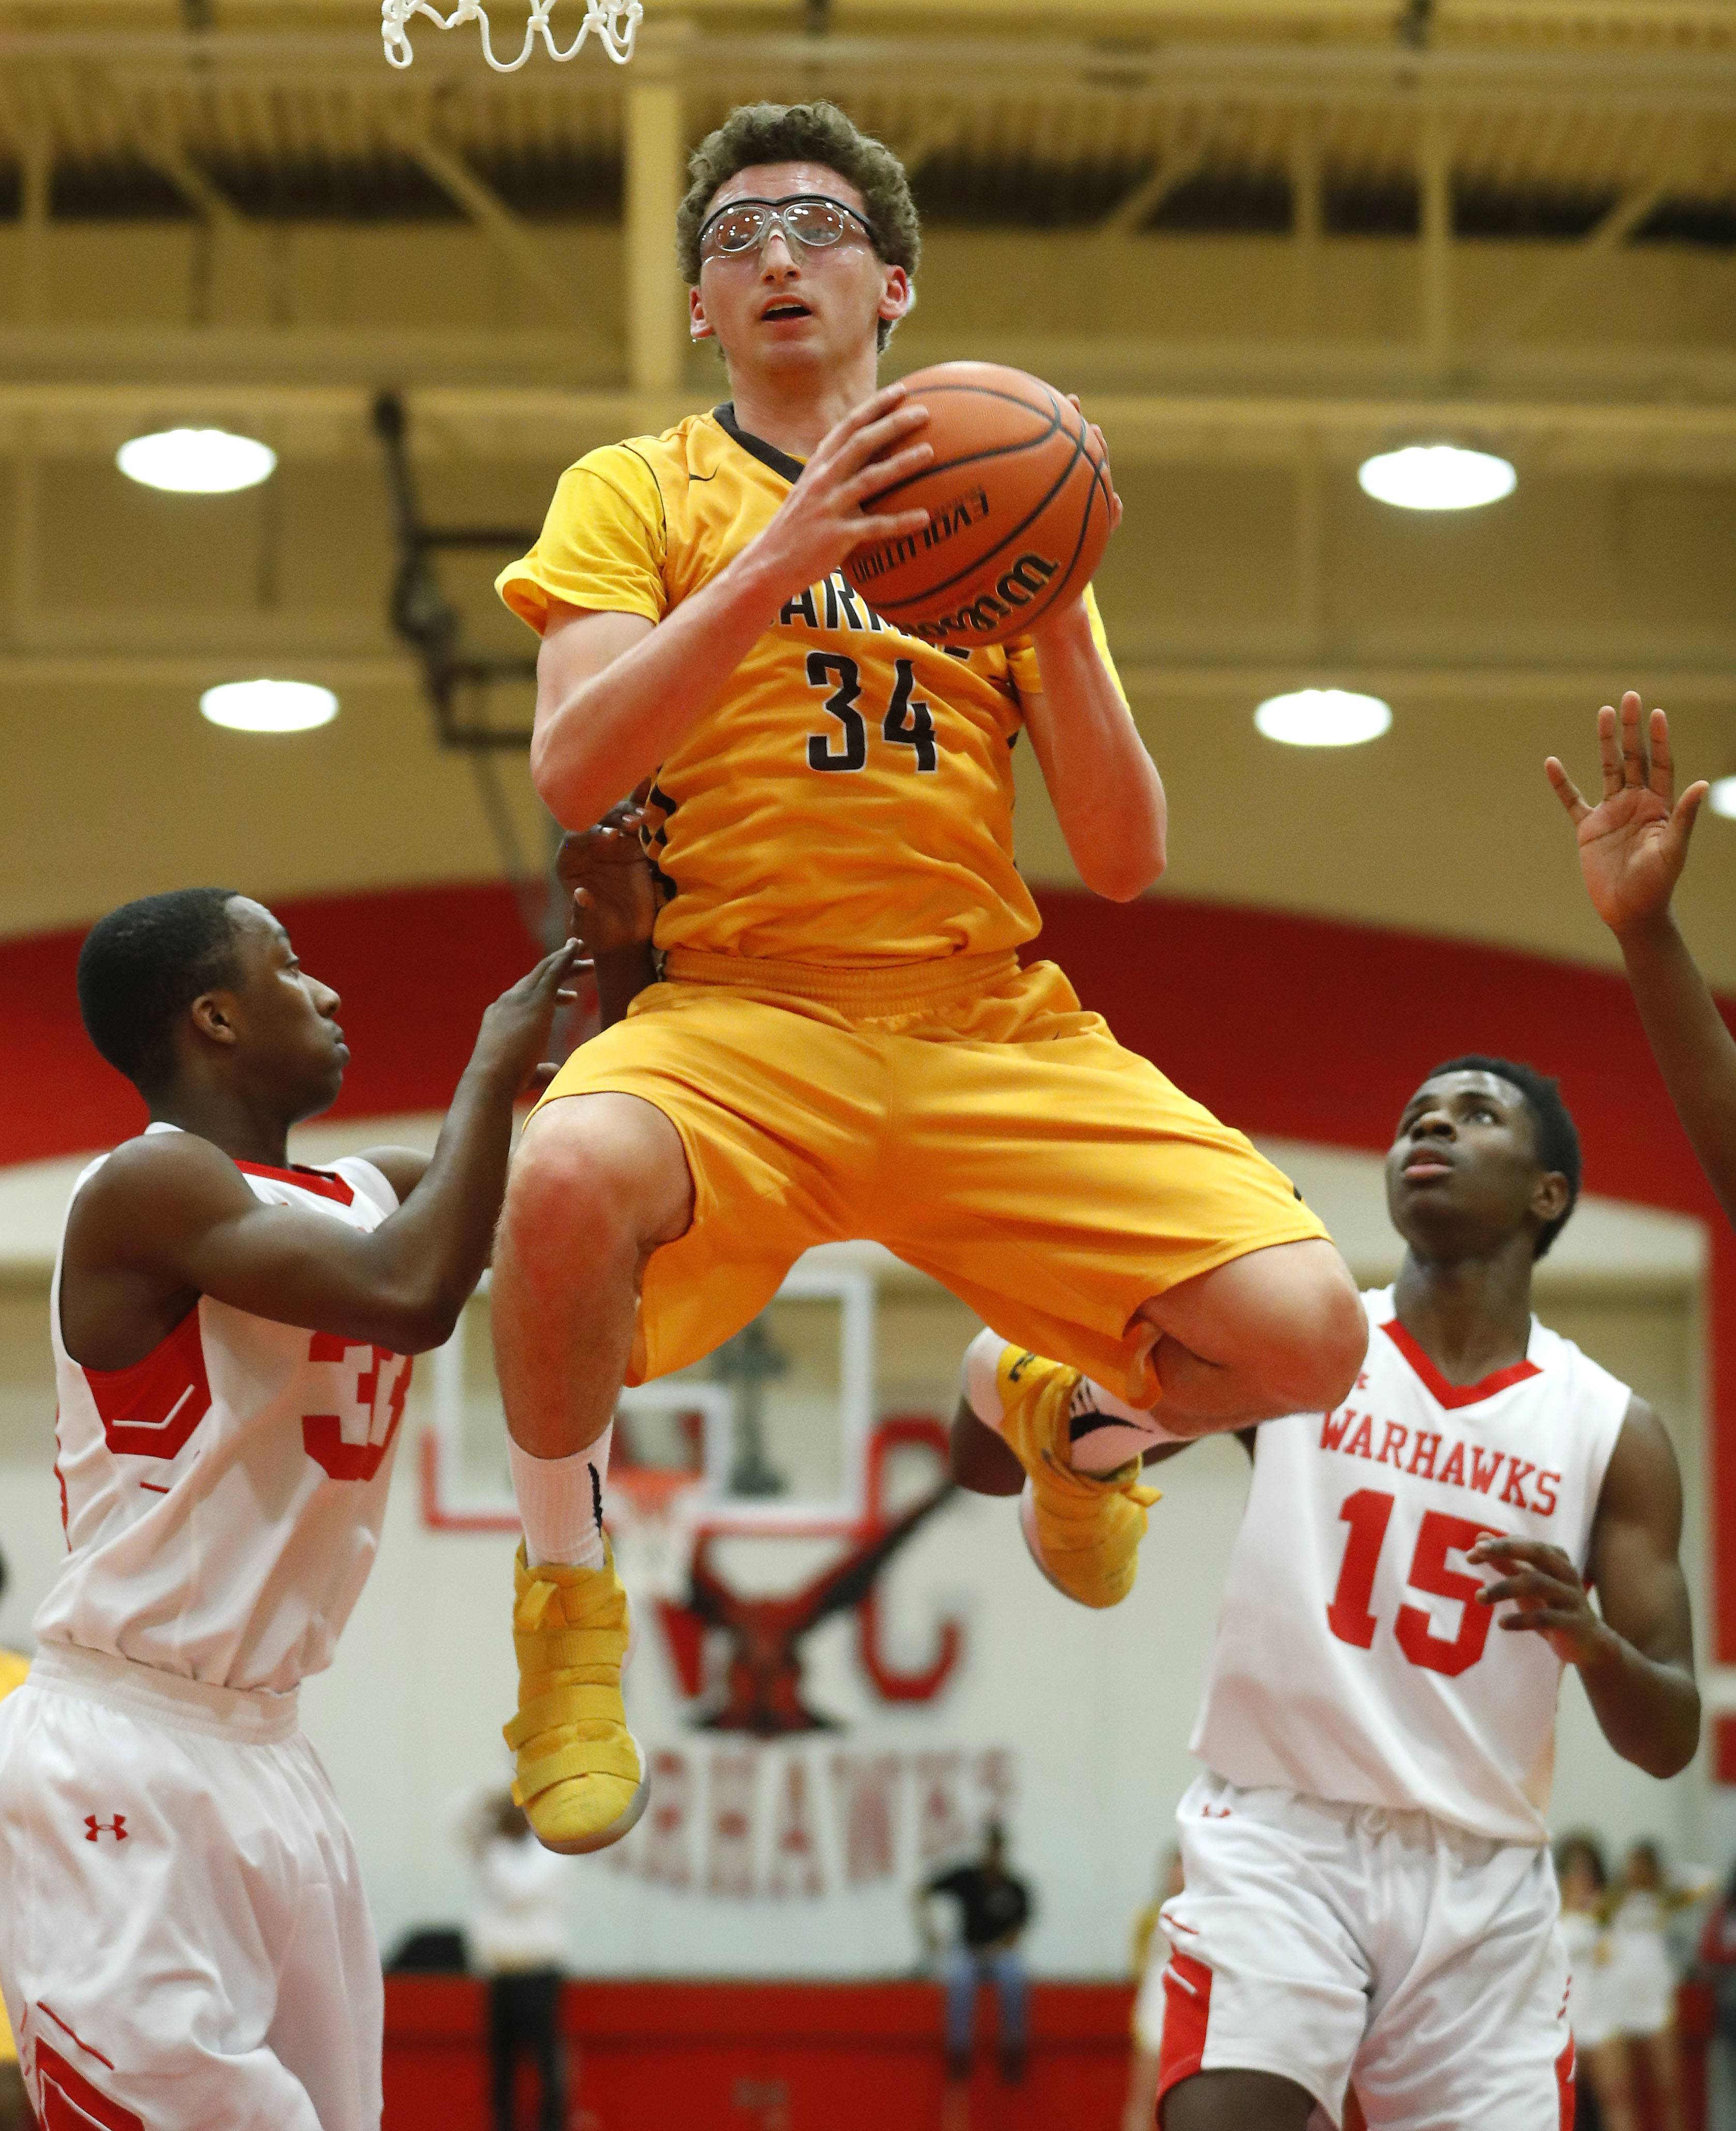 Carmel's Johnny Roeser grabs a rebound during Class 3A sectional semifinal play Wednesday at North Chicago.